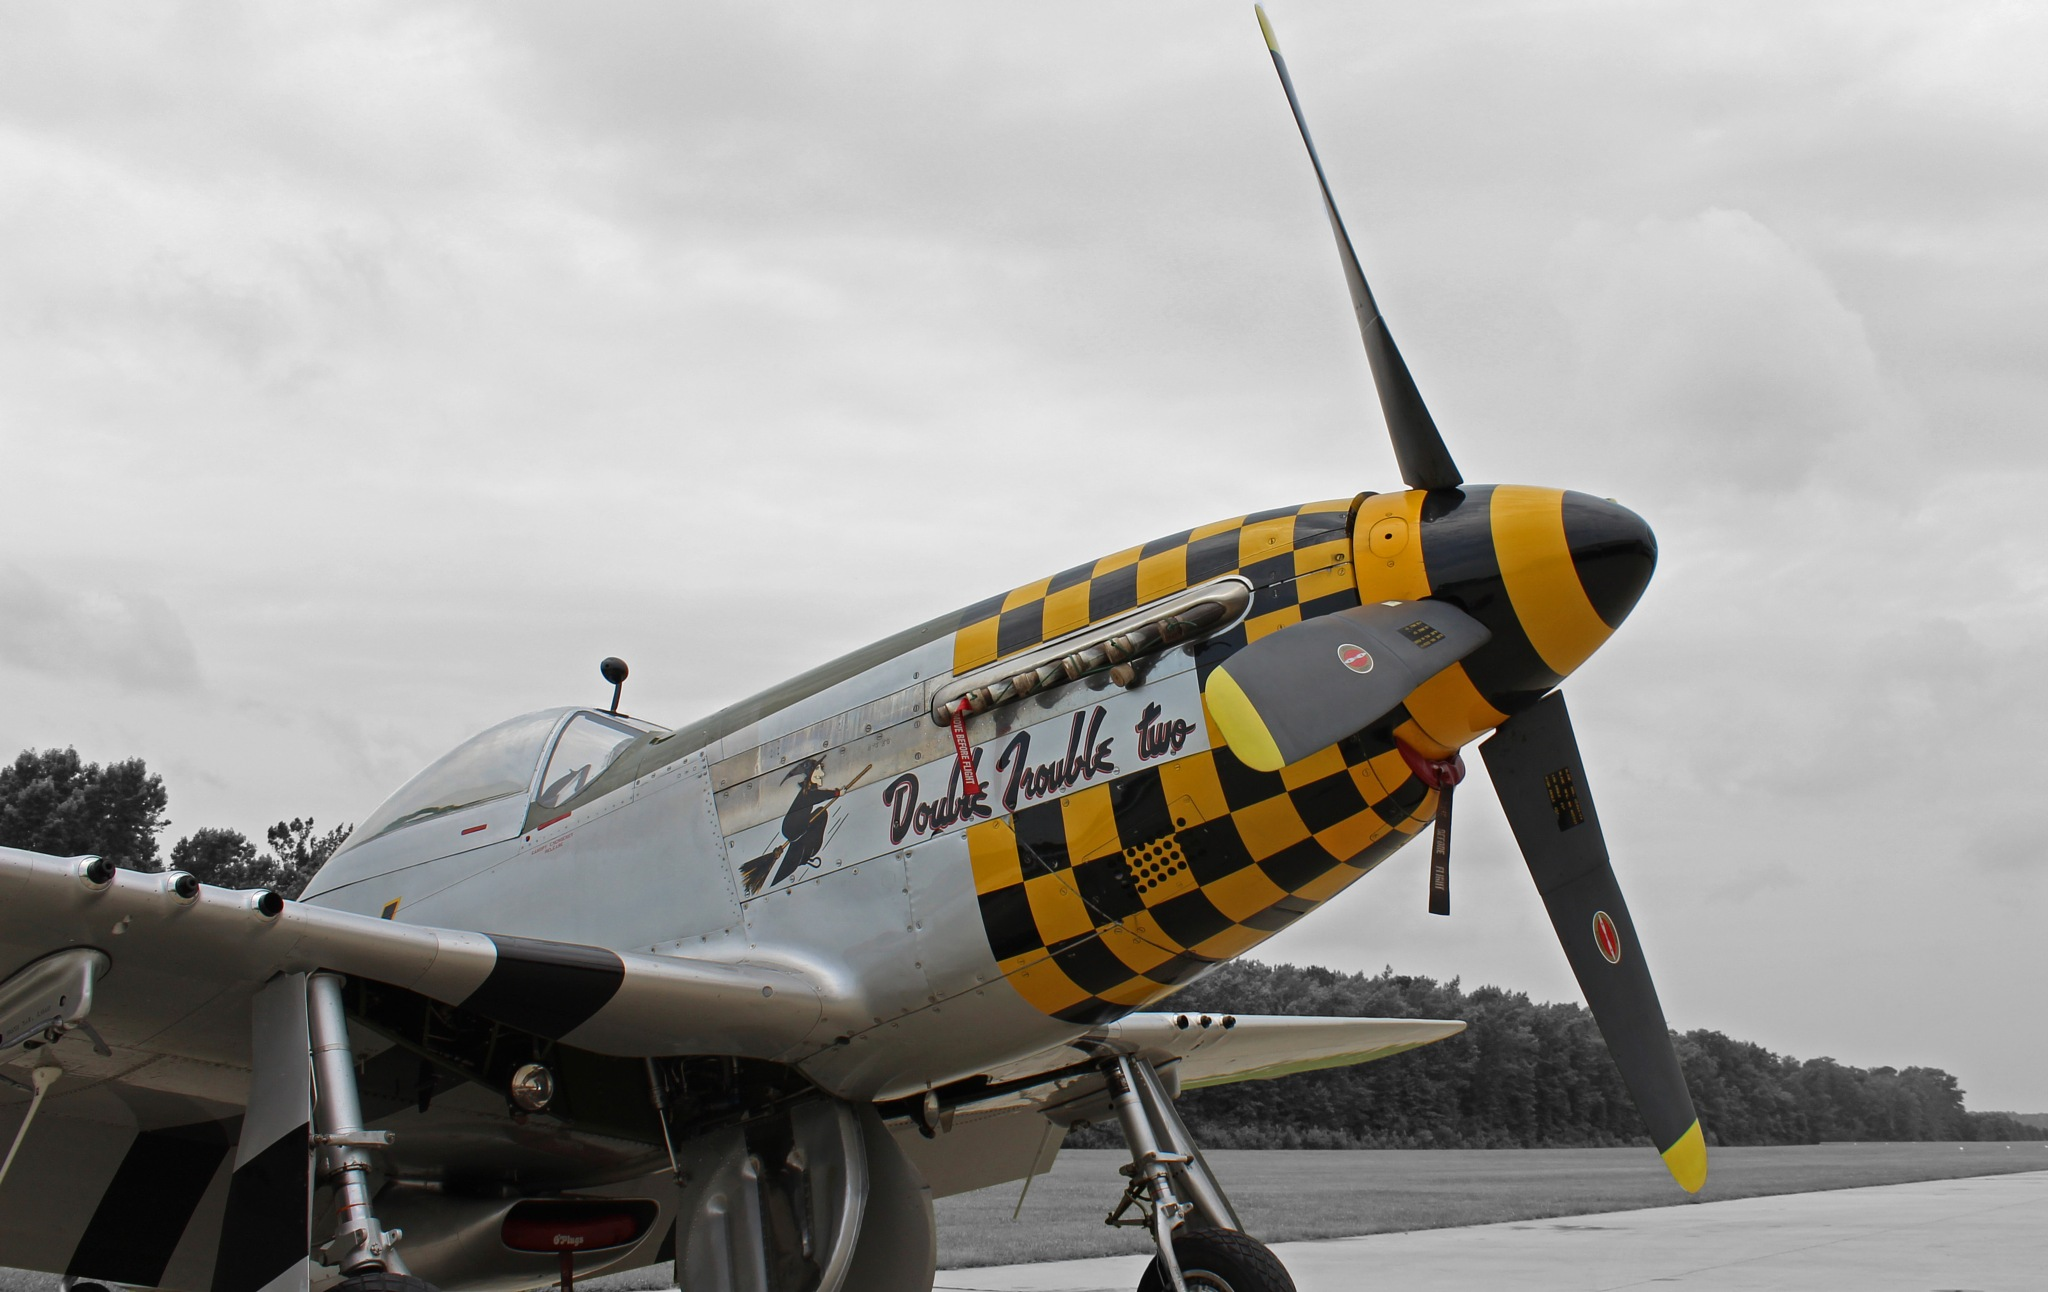 P-51 Mustang by Jennifer Stafford